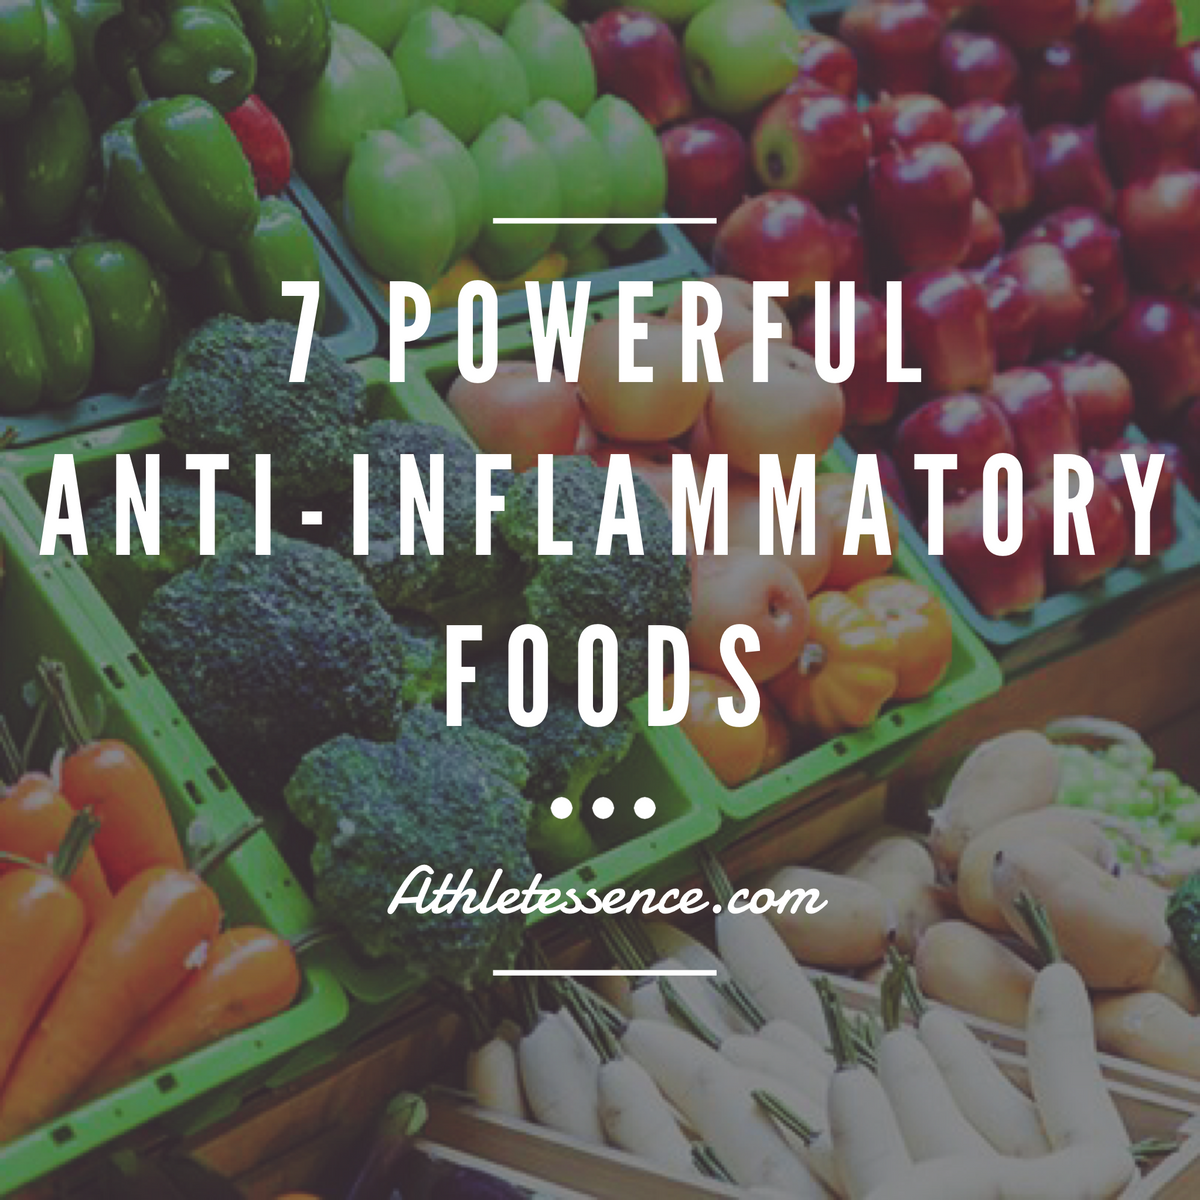 7 Powerful Anti-Inflammatory Foods